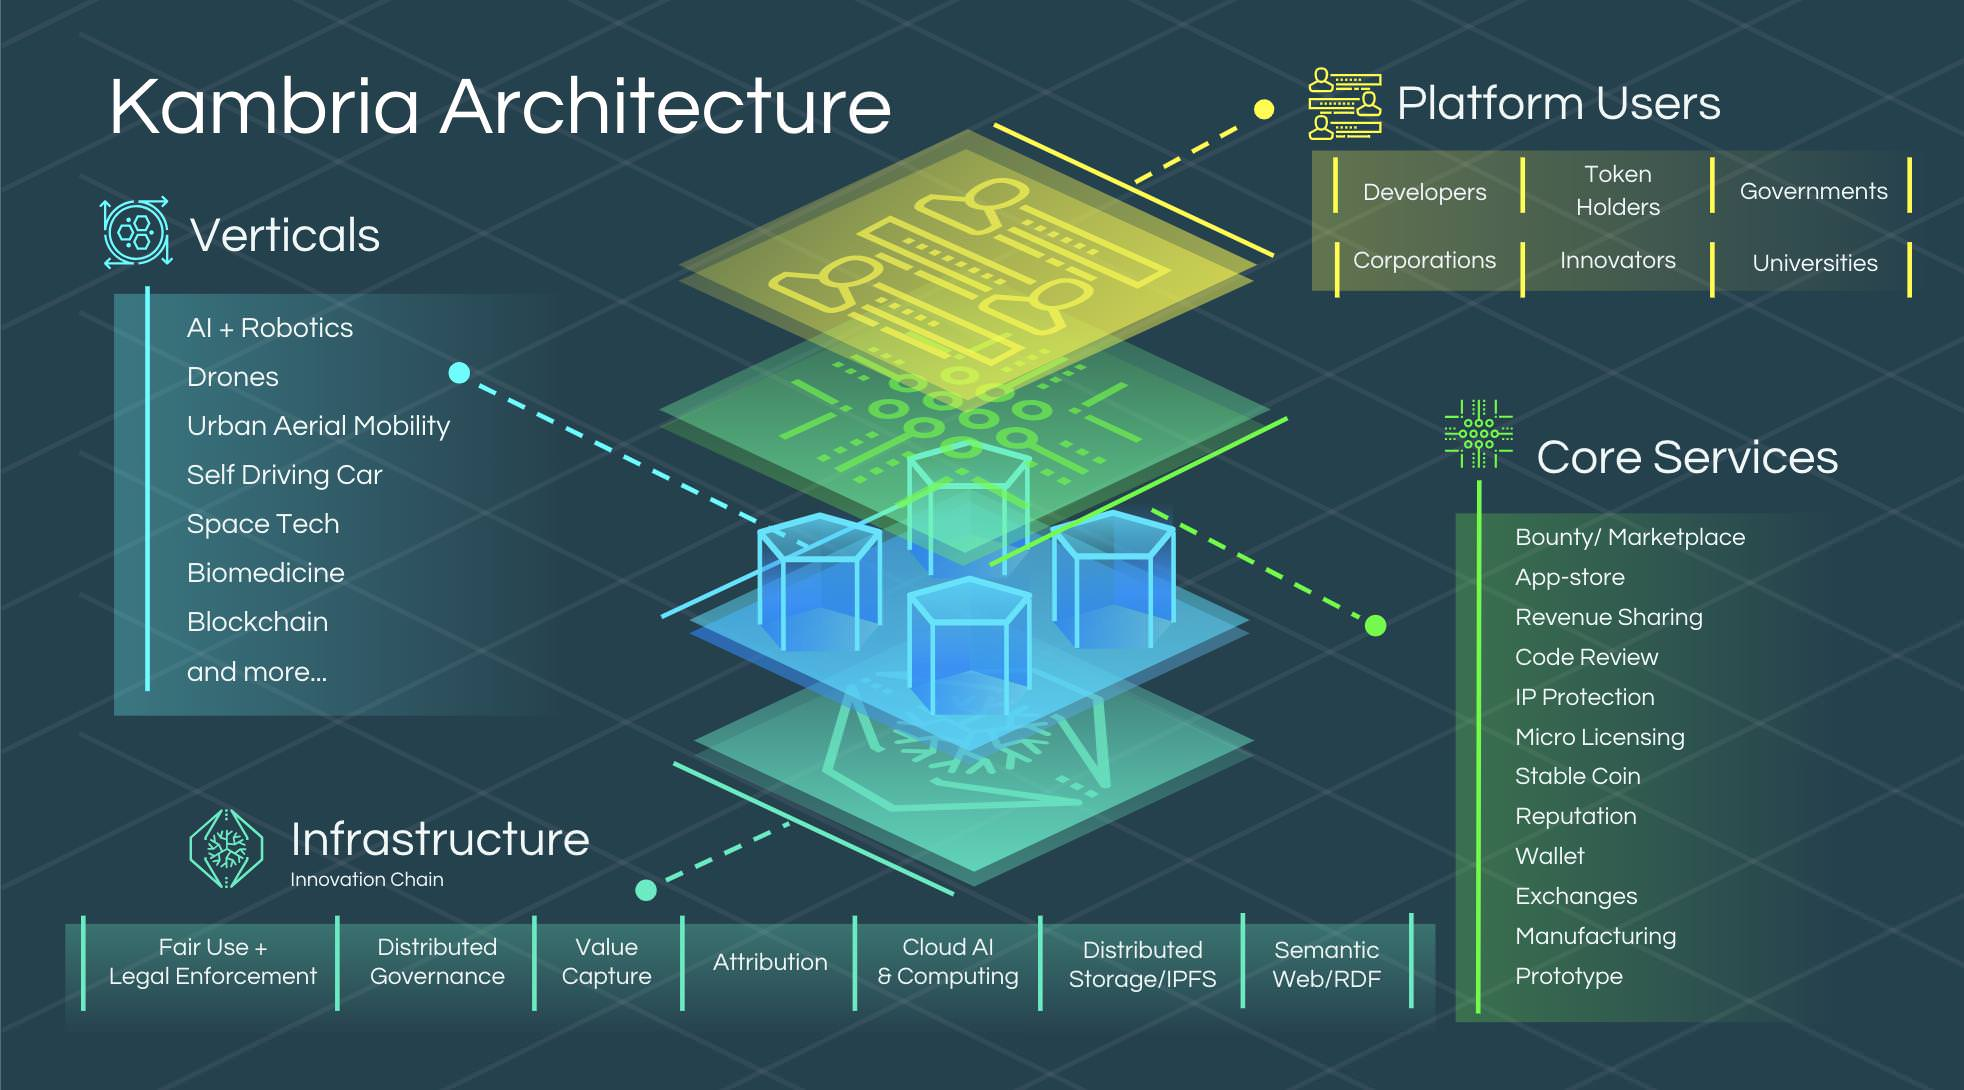 kambria architecture infographic